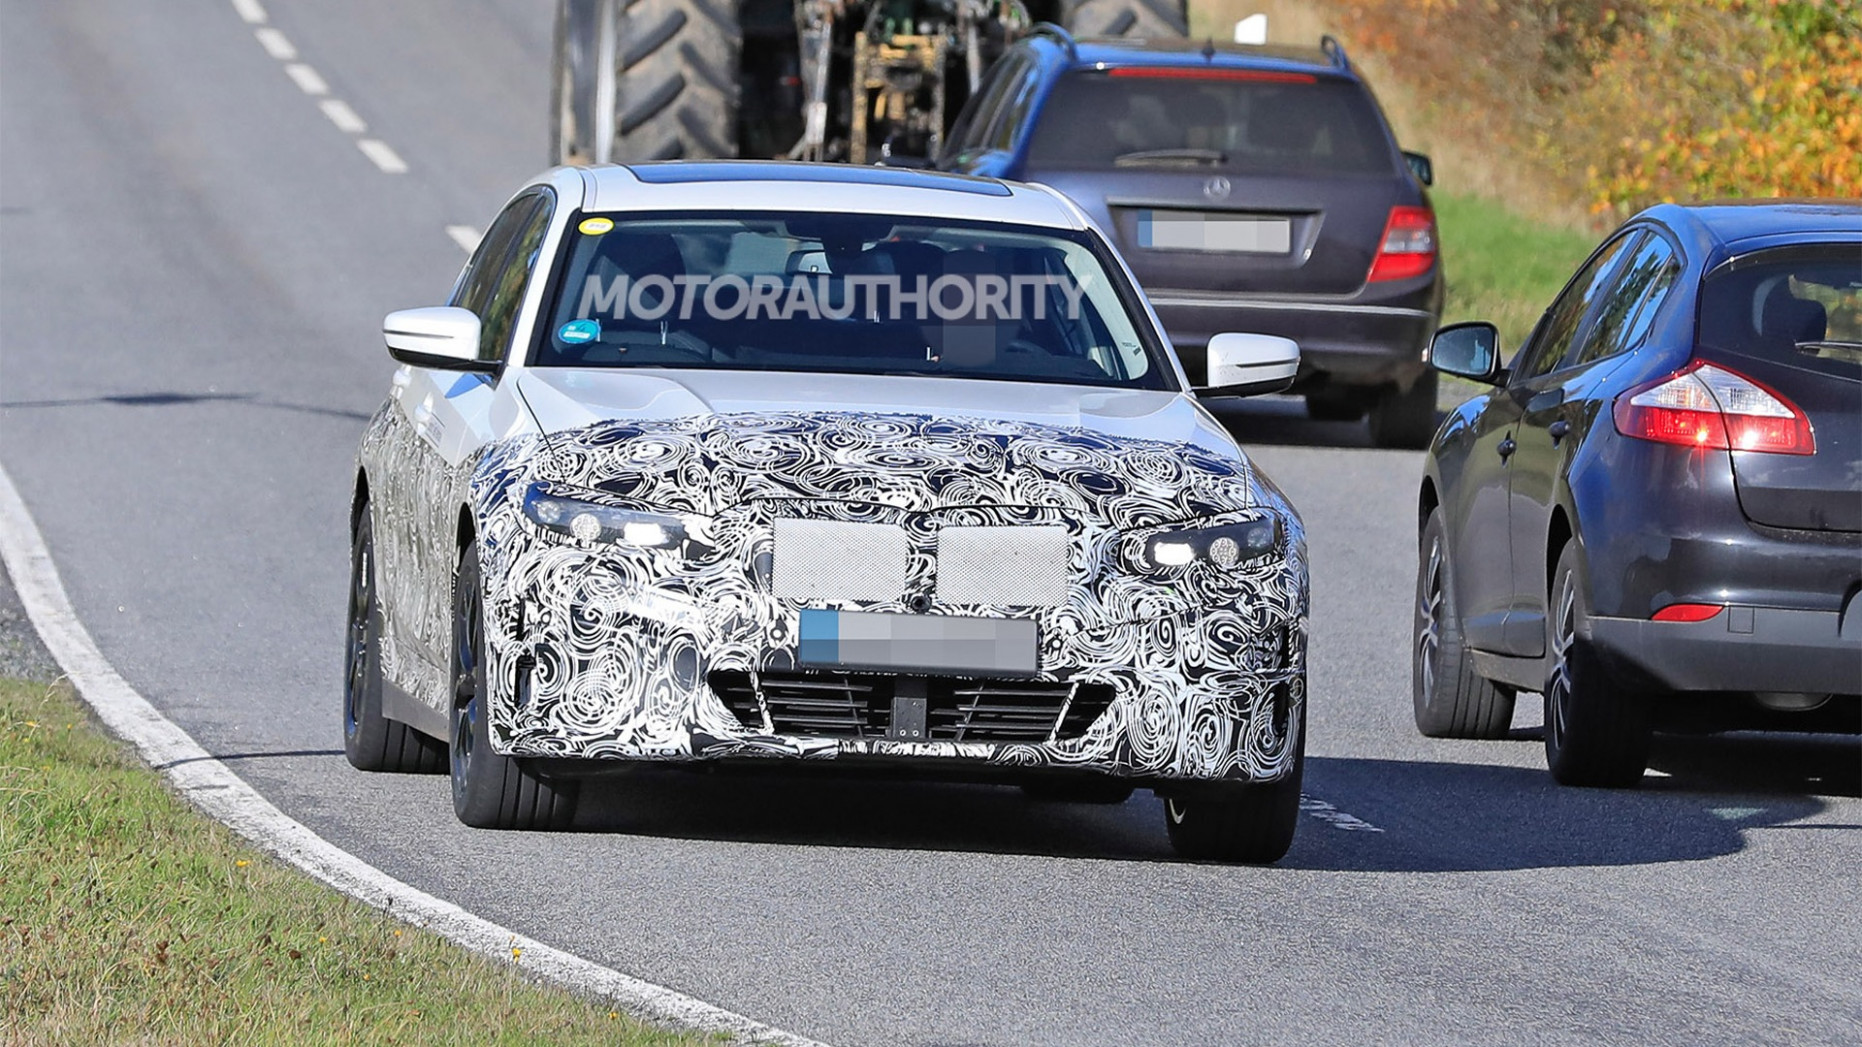 Overview 2022 Spy Shots BMW 3 Series